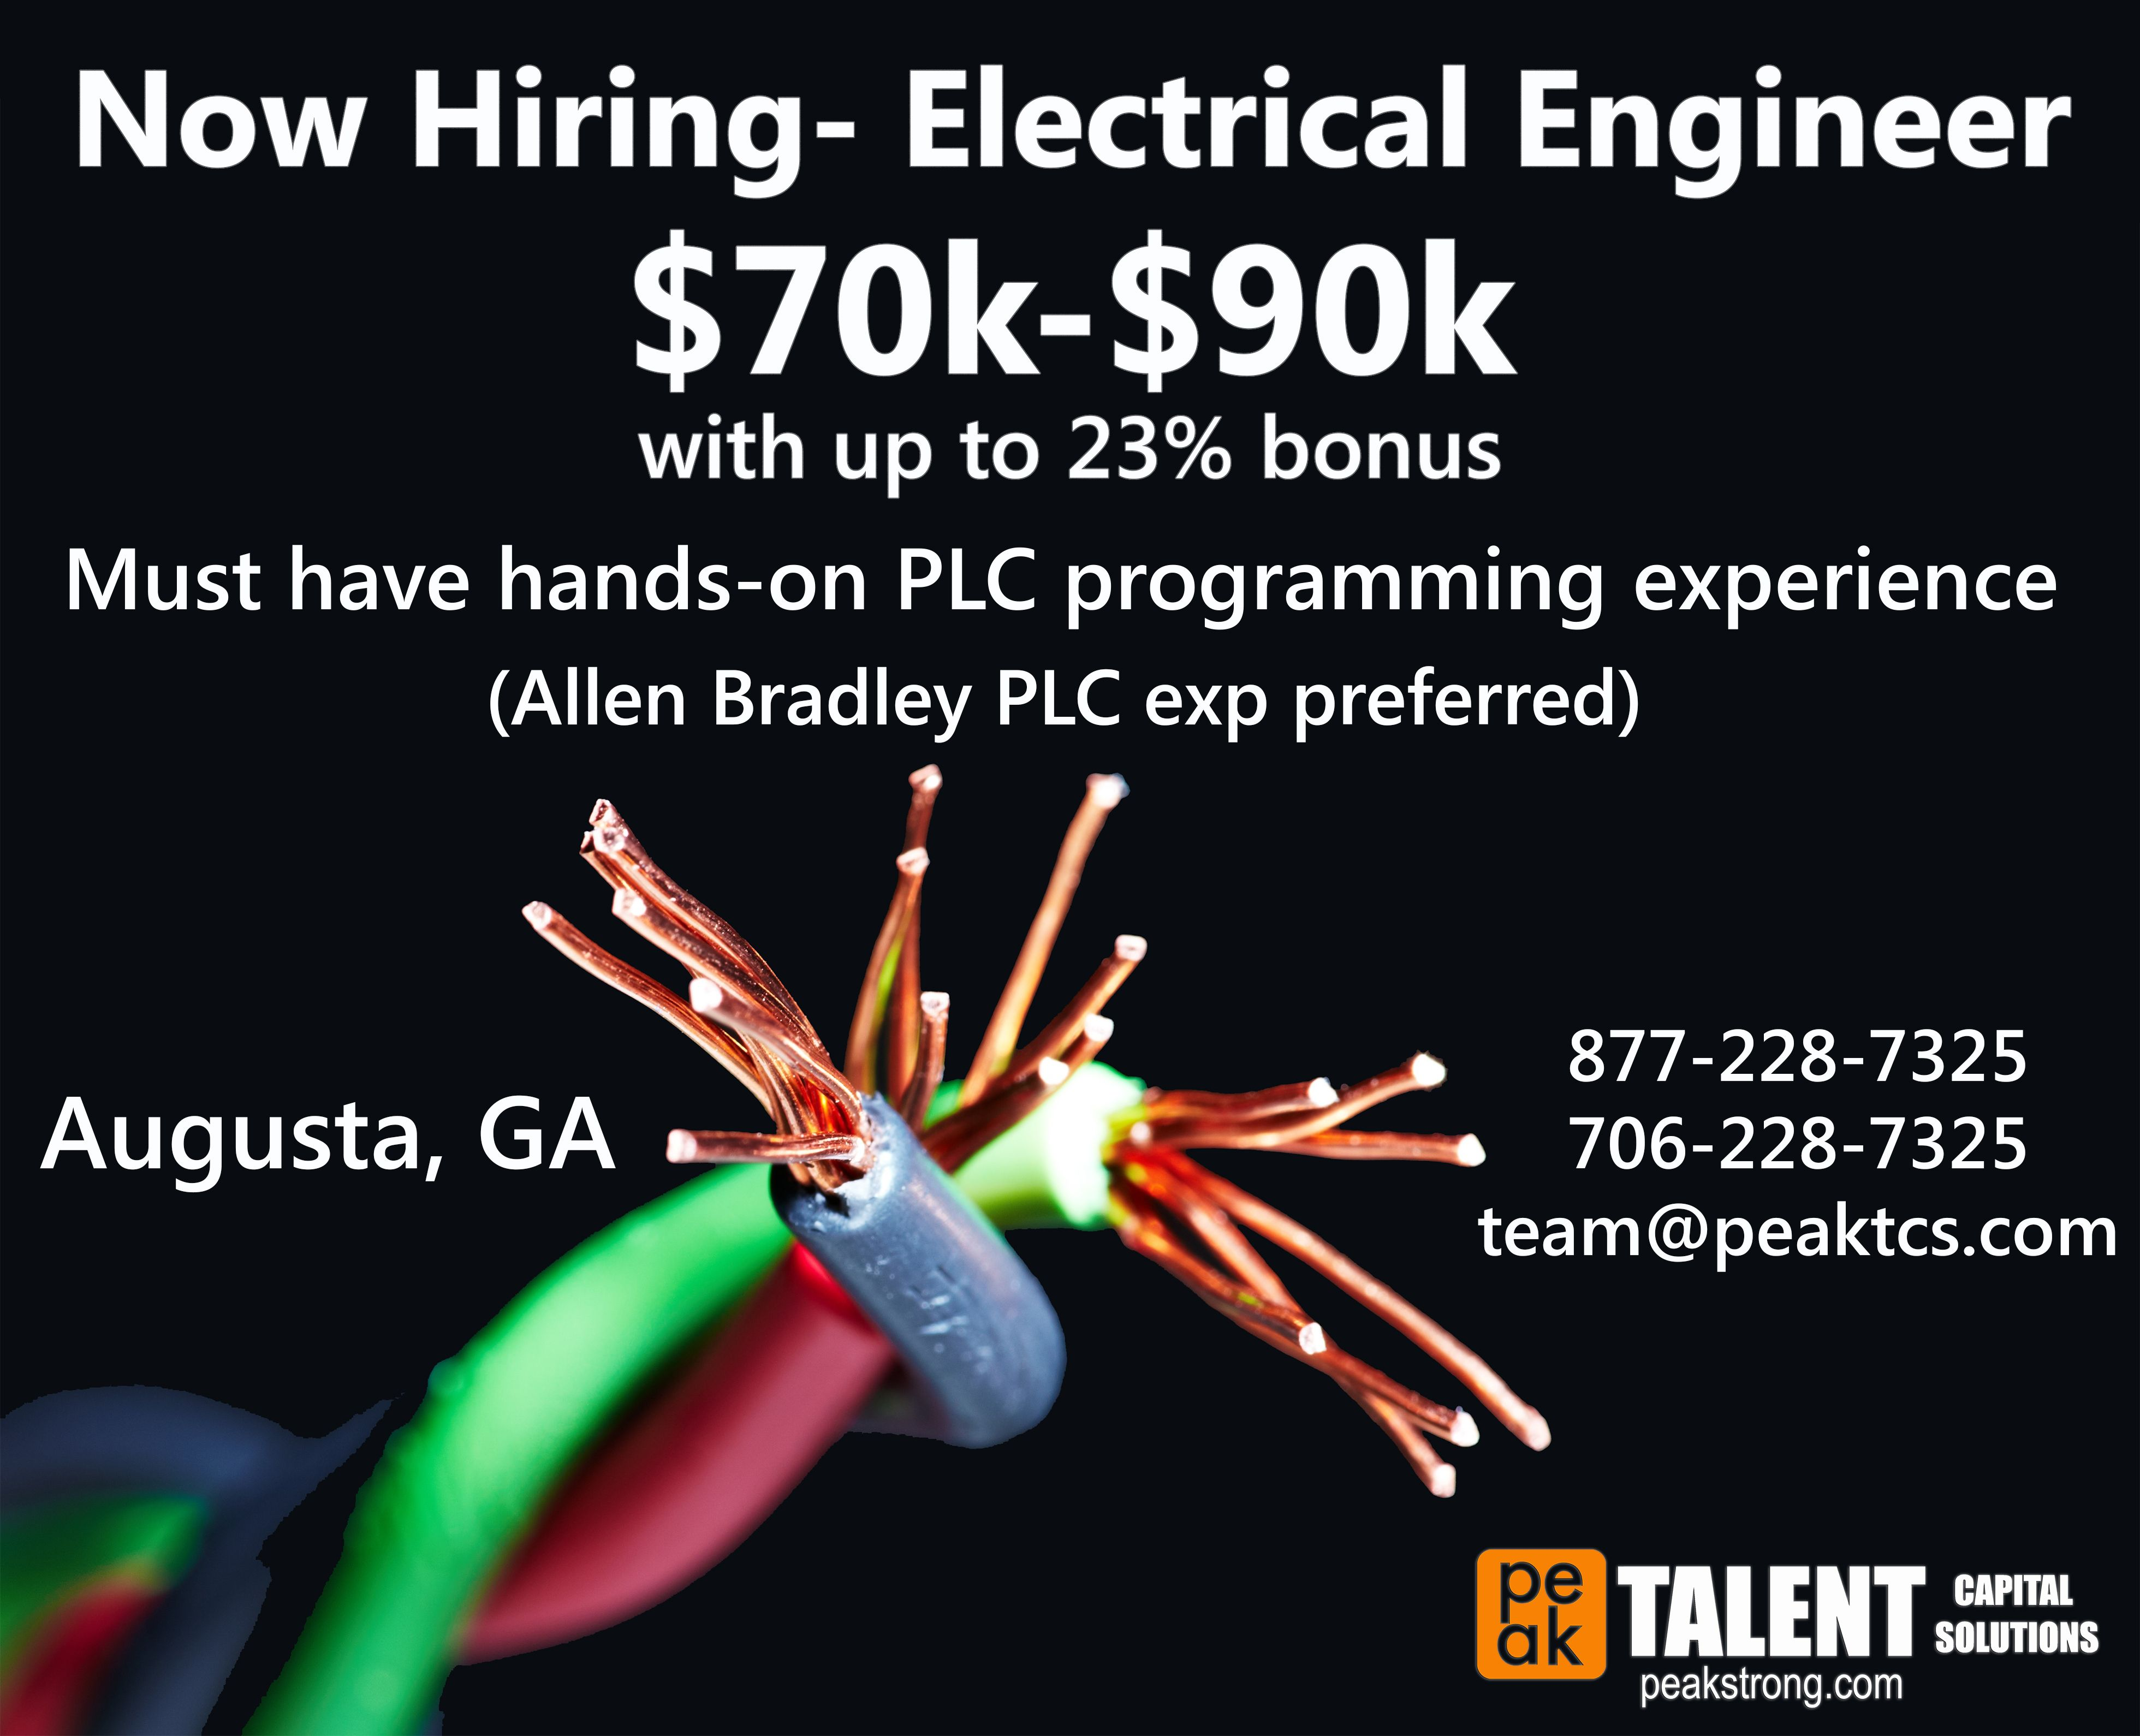 Now hiring for an electrical engineer Electrical